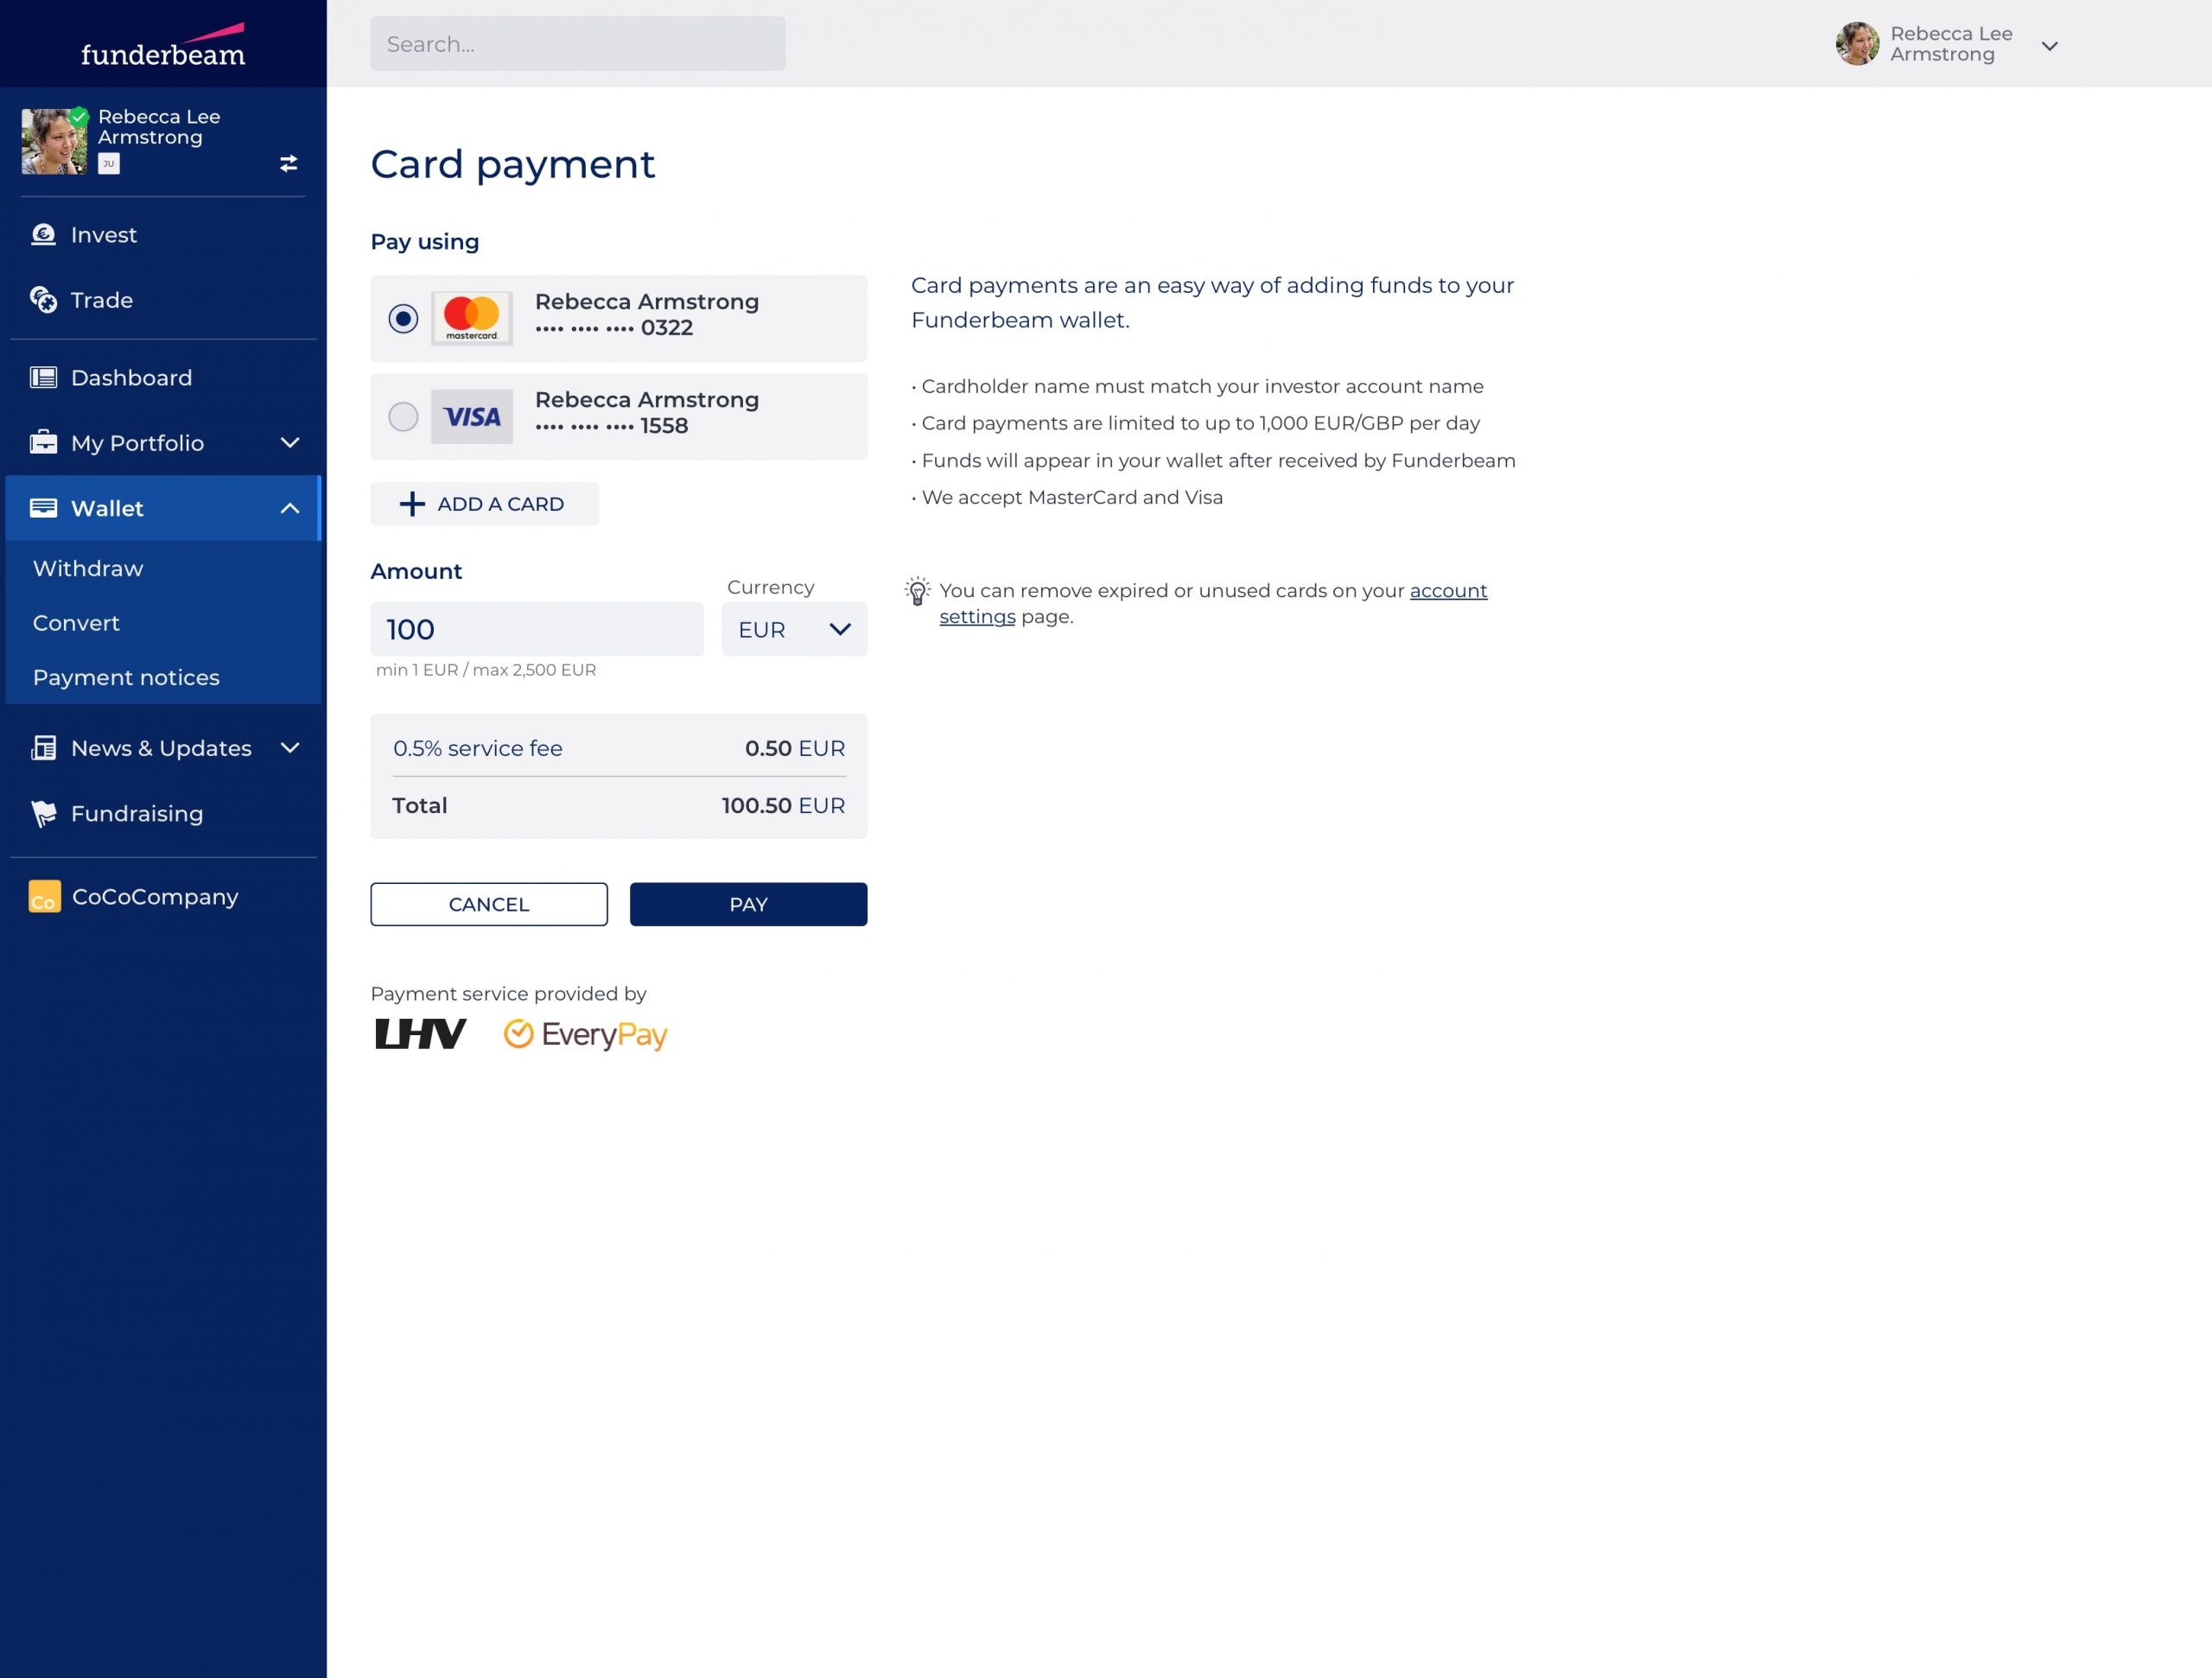 The Card payment page